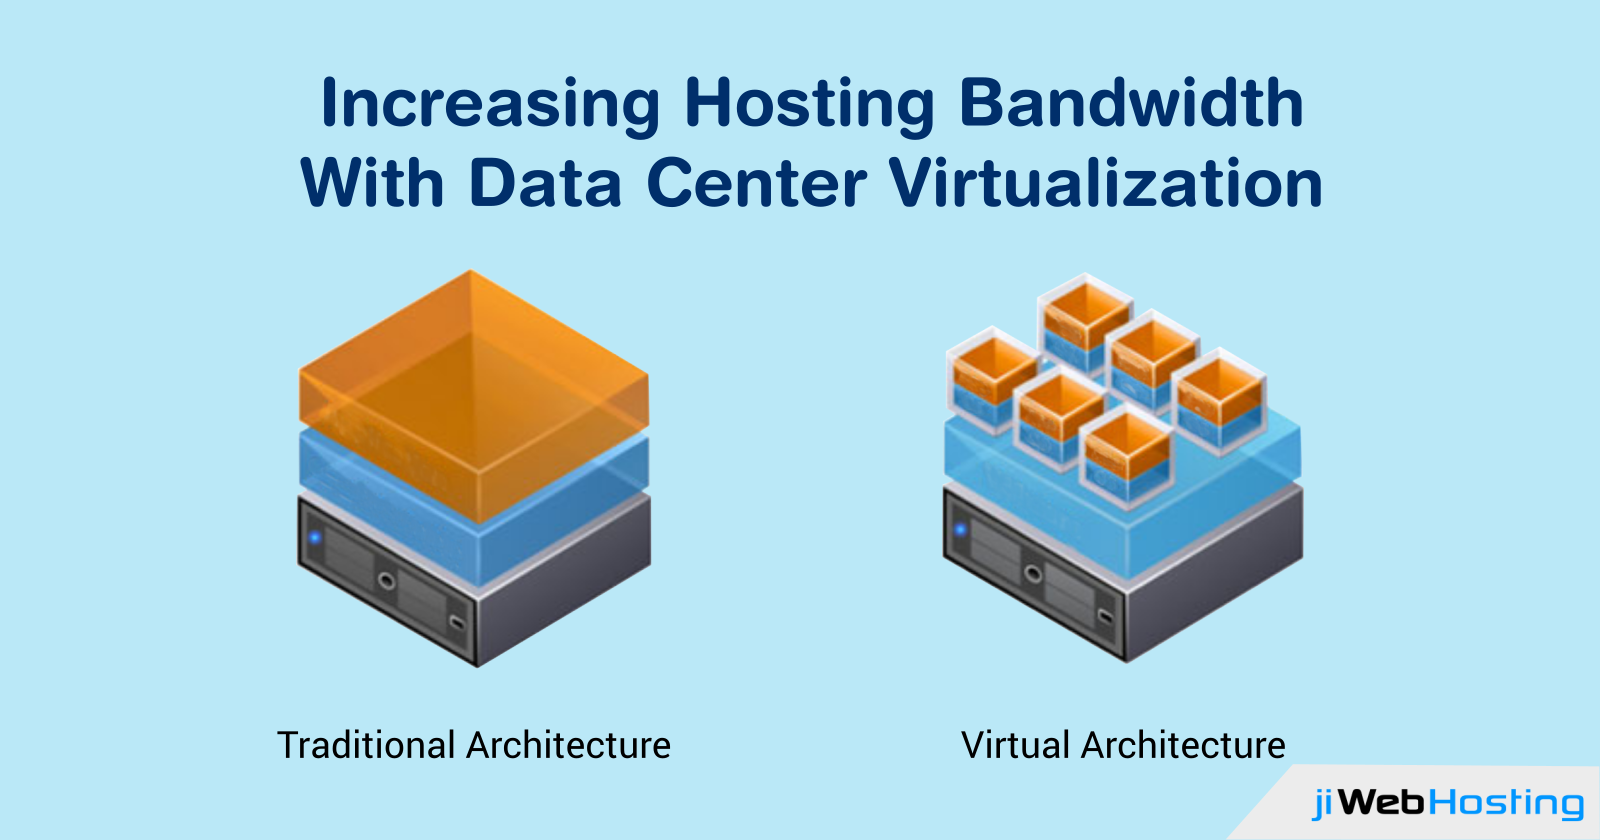 Increasing Hosting Bandwidth by Employing Data Center Virtualization Techniques at Servers